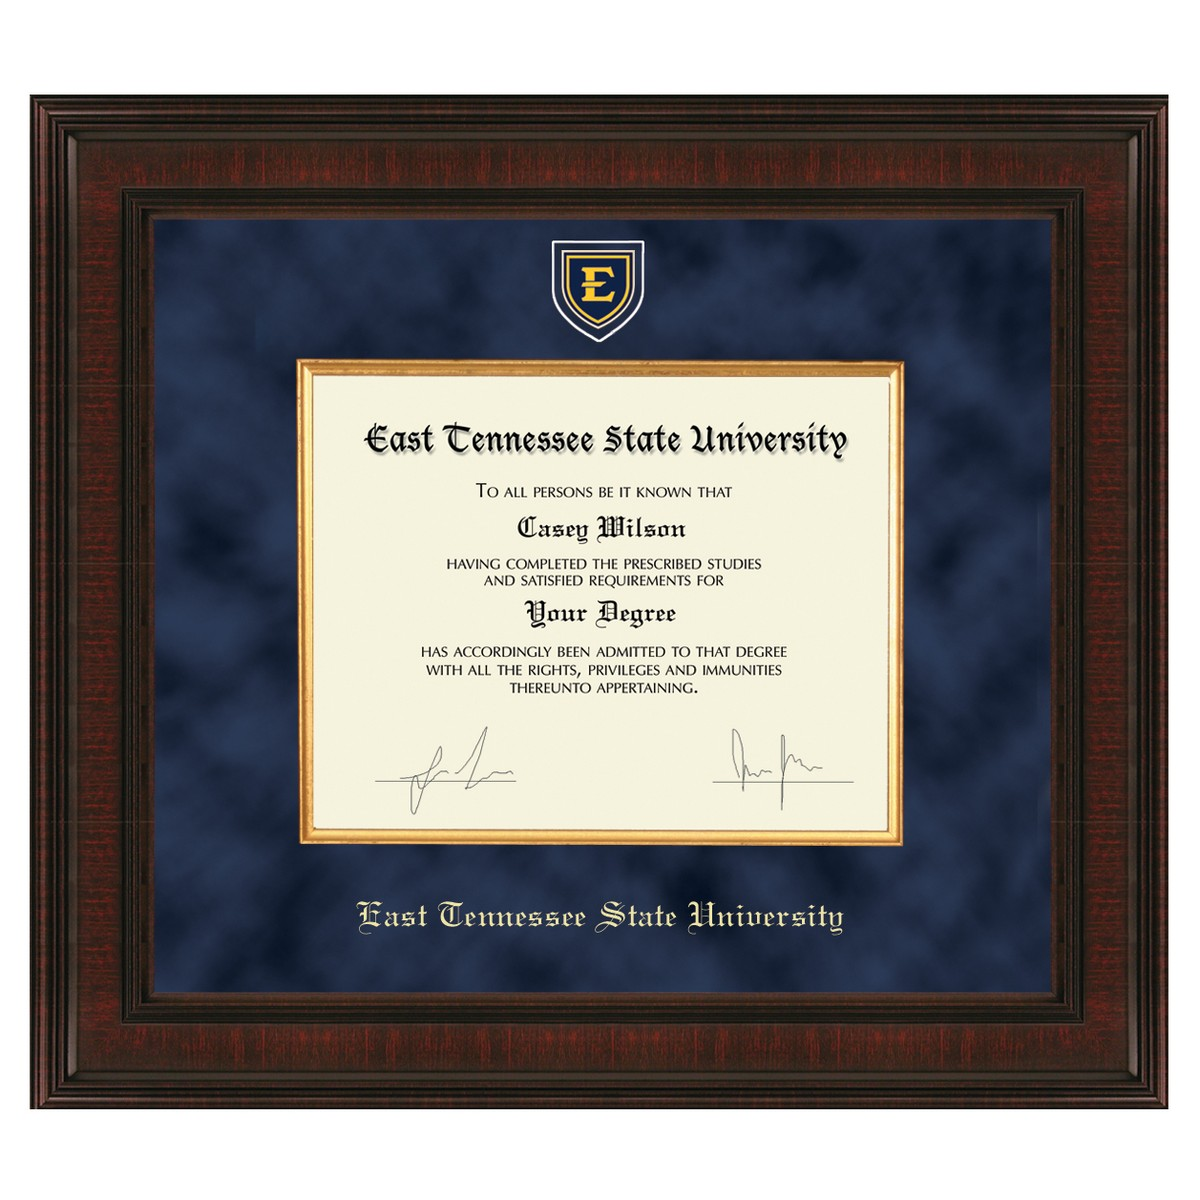 East Tennessee State University Diploma Frame Excelsior